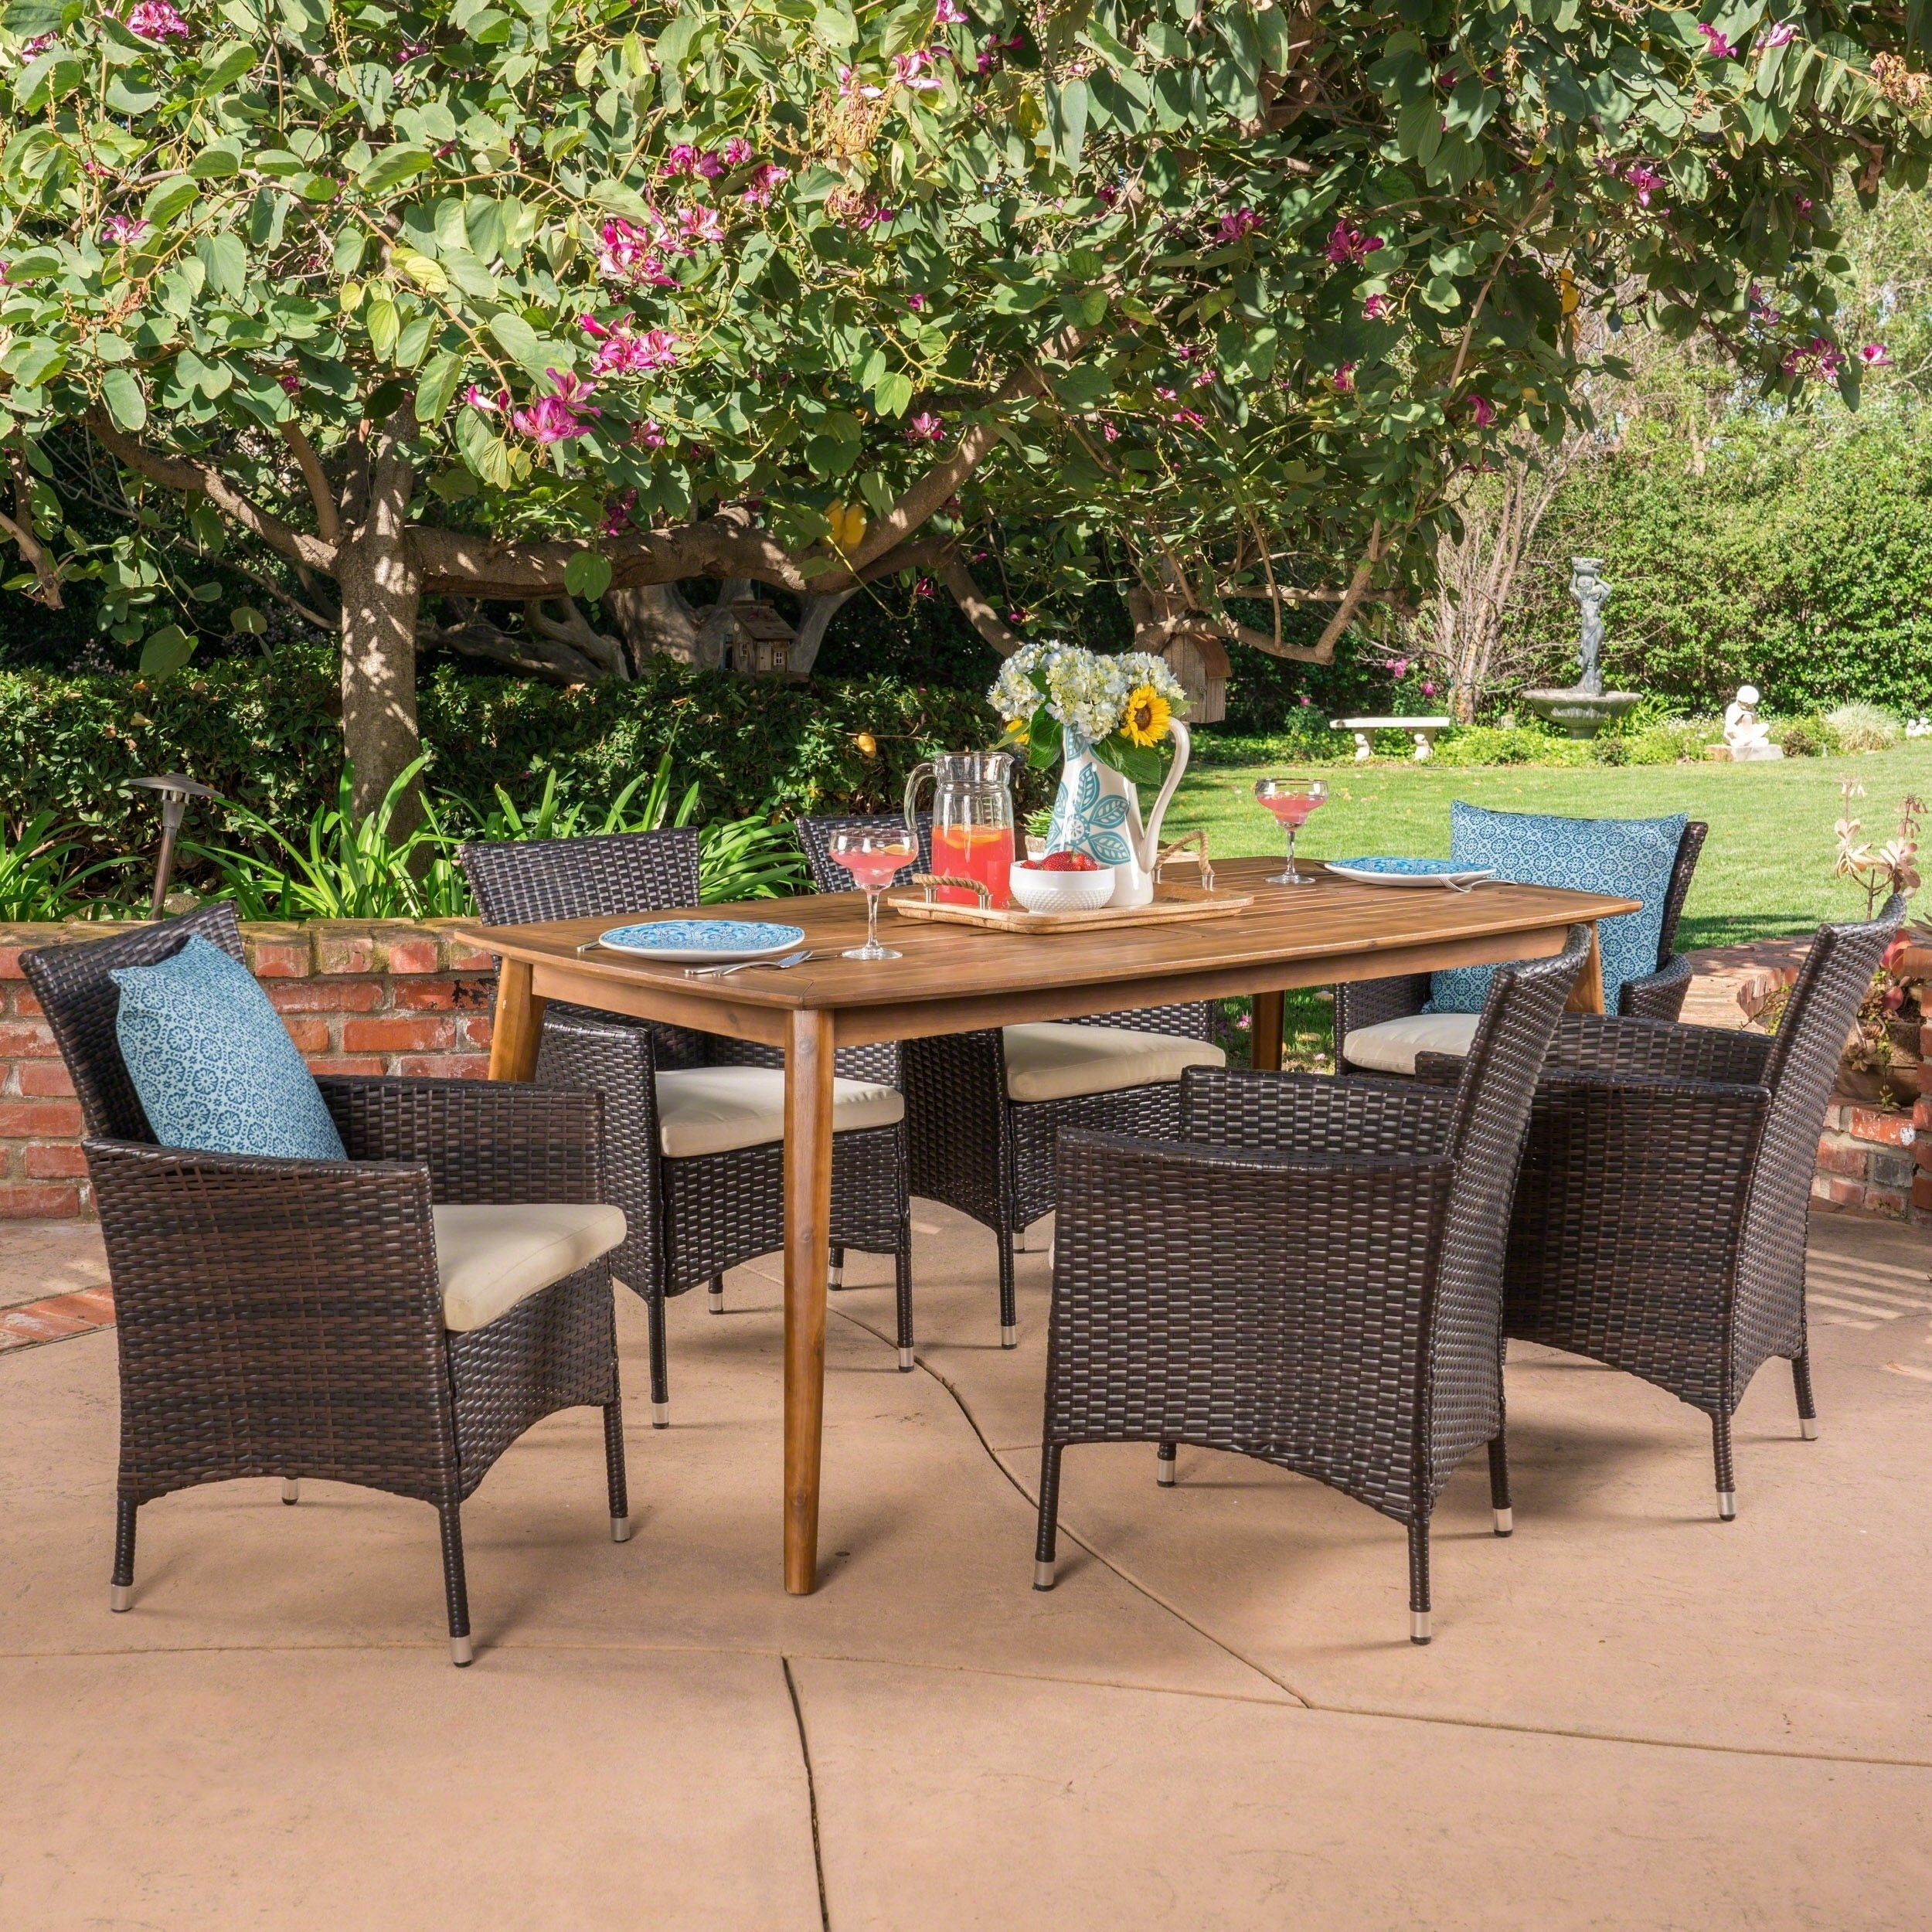 Shop Jaxon Outdoor 7 Piece Multibrown Pe Wicker Dining Set With For Latest Jaxon Grey 6 Piece Rectangle Extension Dining Sets With Bench & Uph Chairs (View 9 of 20)